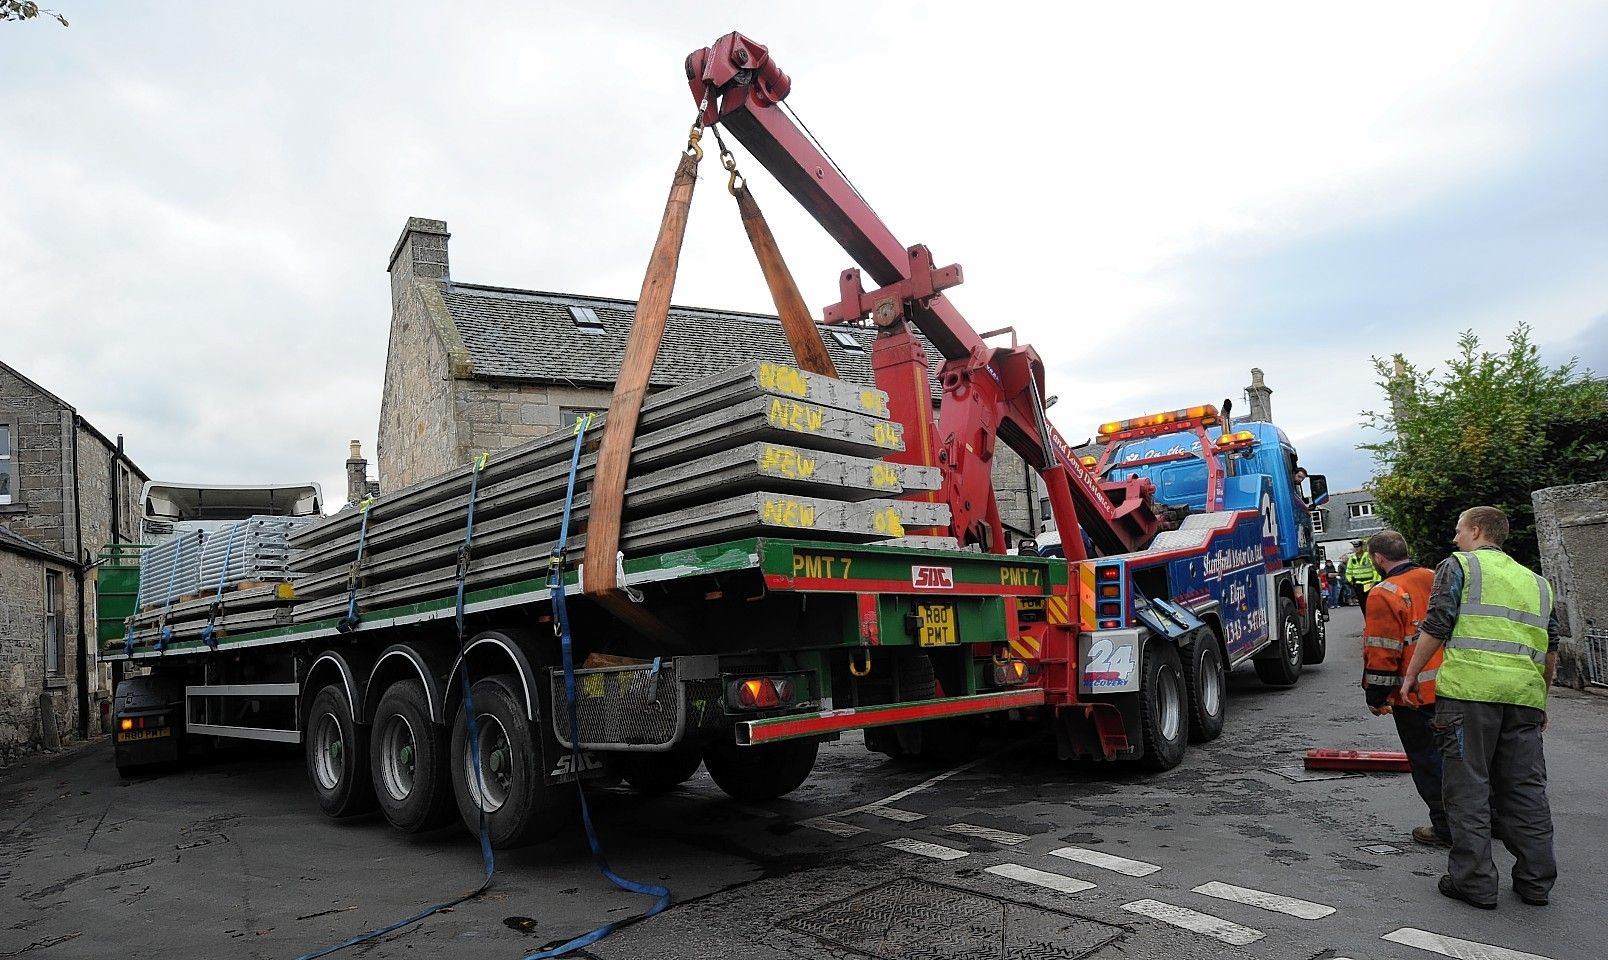 The lorry was lifted to safety